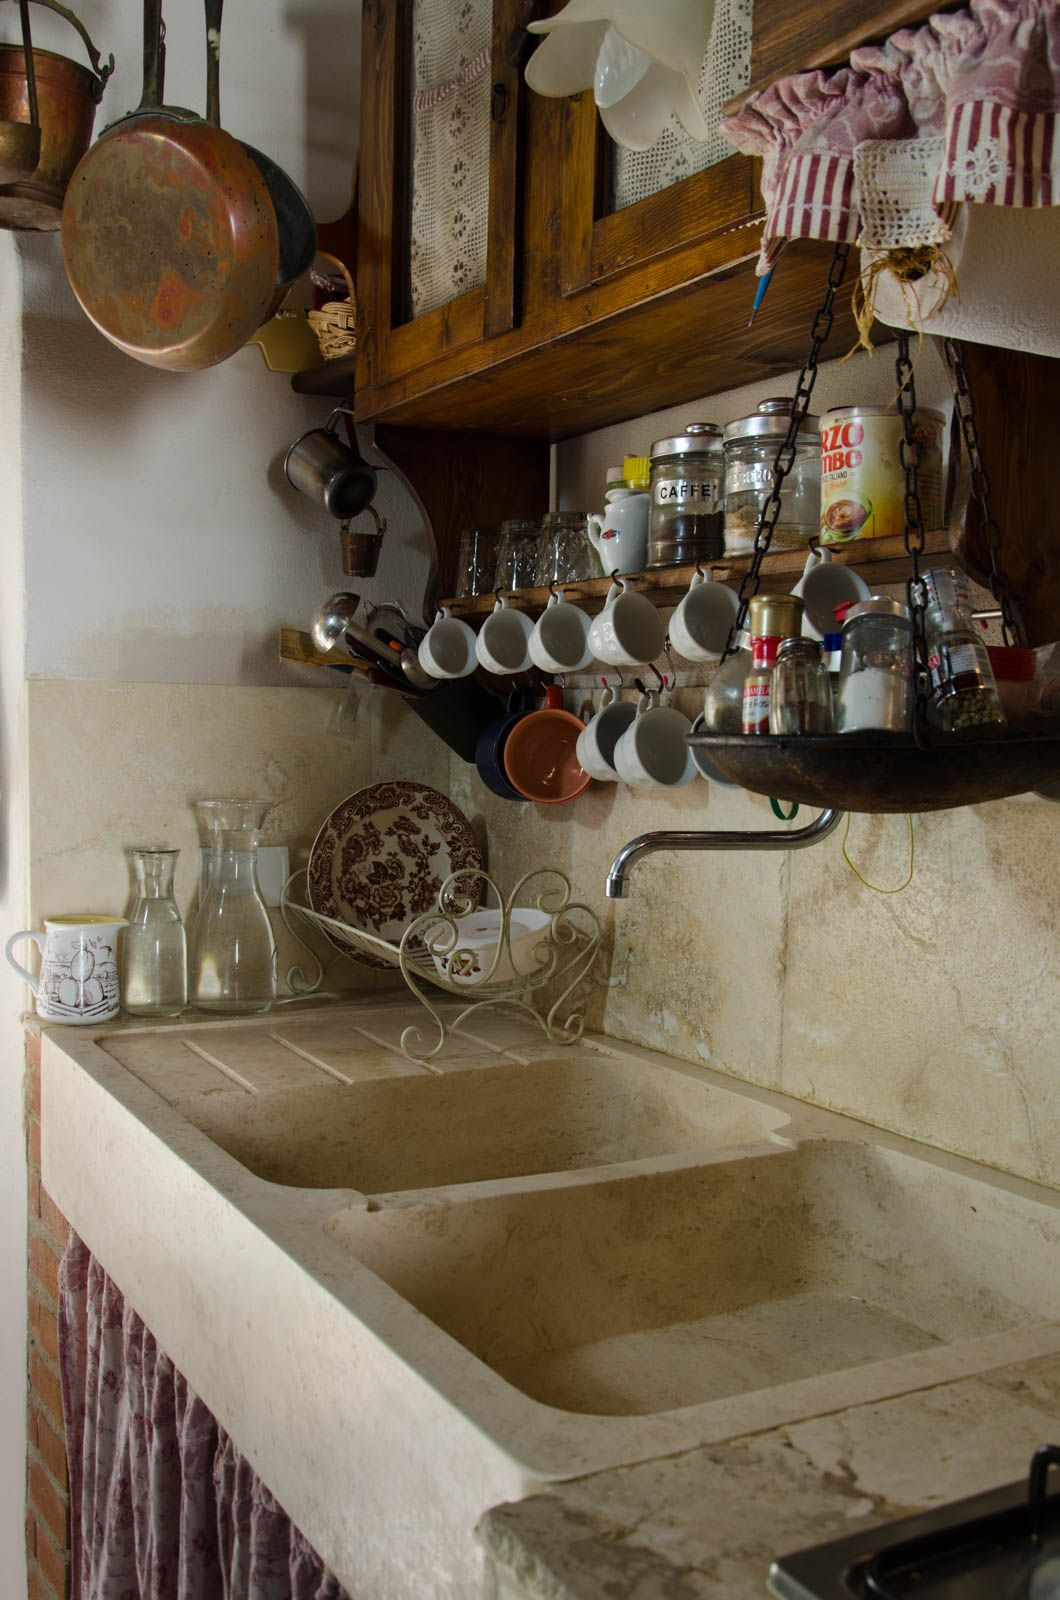 Lavabo Shabby Chic Lavabo In Travertino Massello Cucina Stile Rustico Shabby Chic